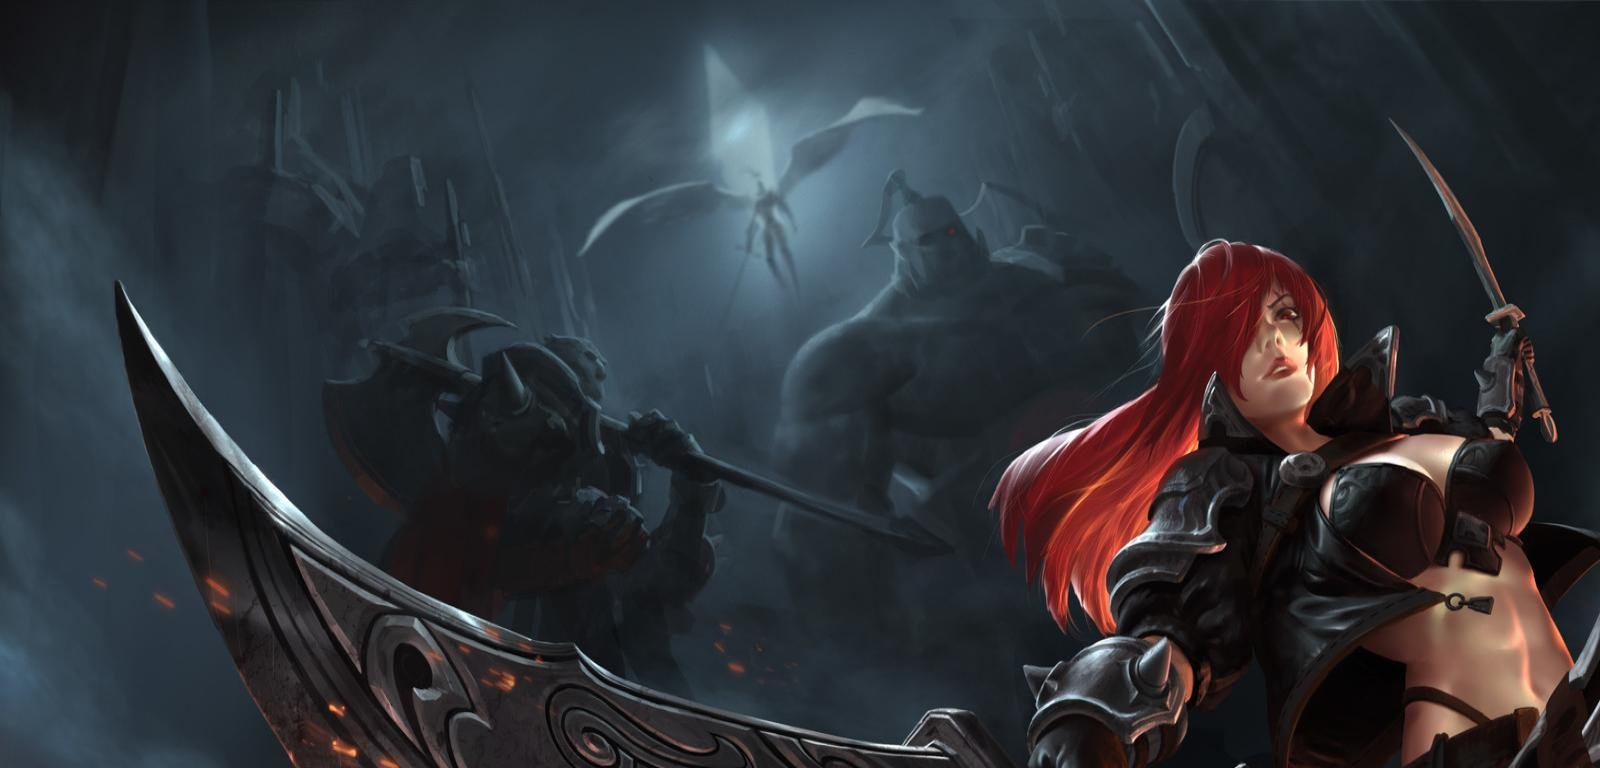 Best Katarina League Of Legends Wallpaper Id172226 For